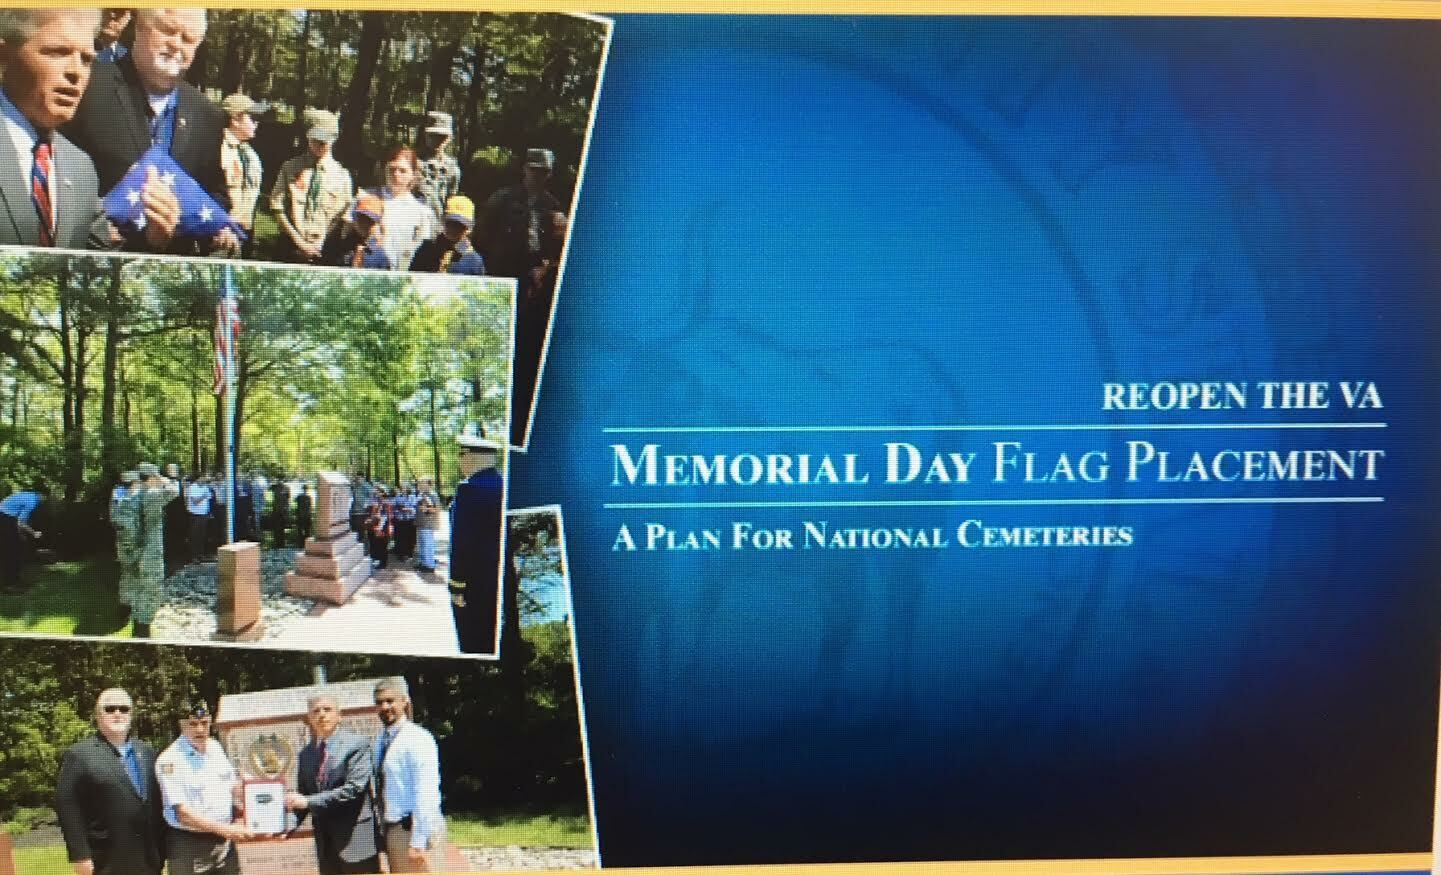 Suffolk County has crafted a plan for safe placement of flags at cemeteries.